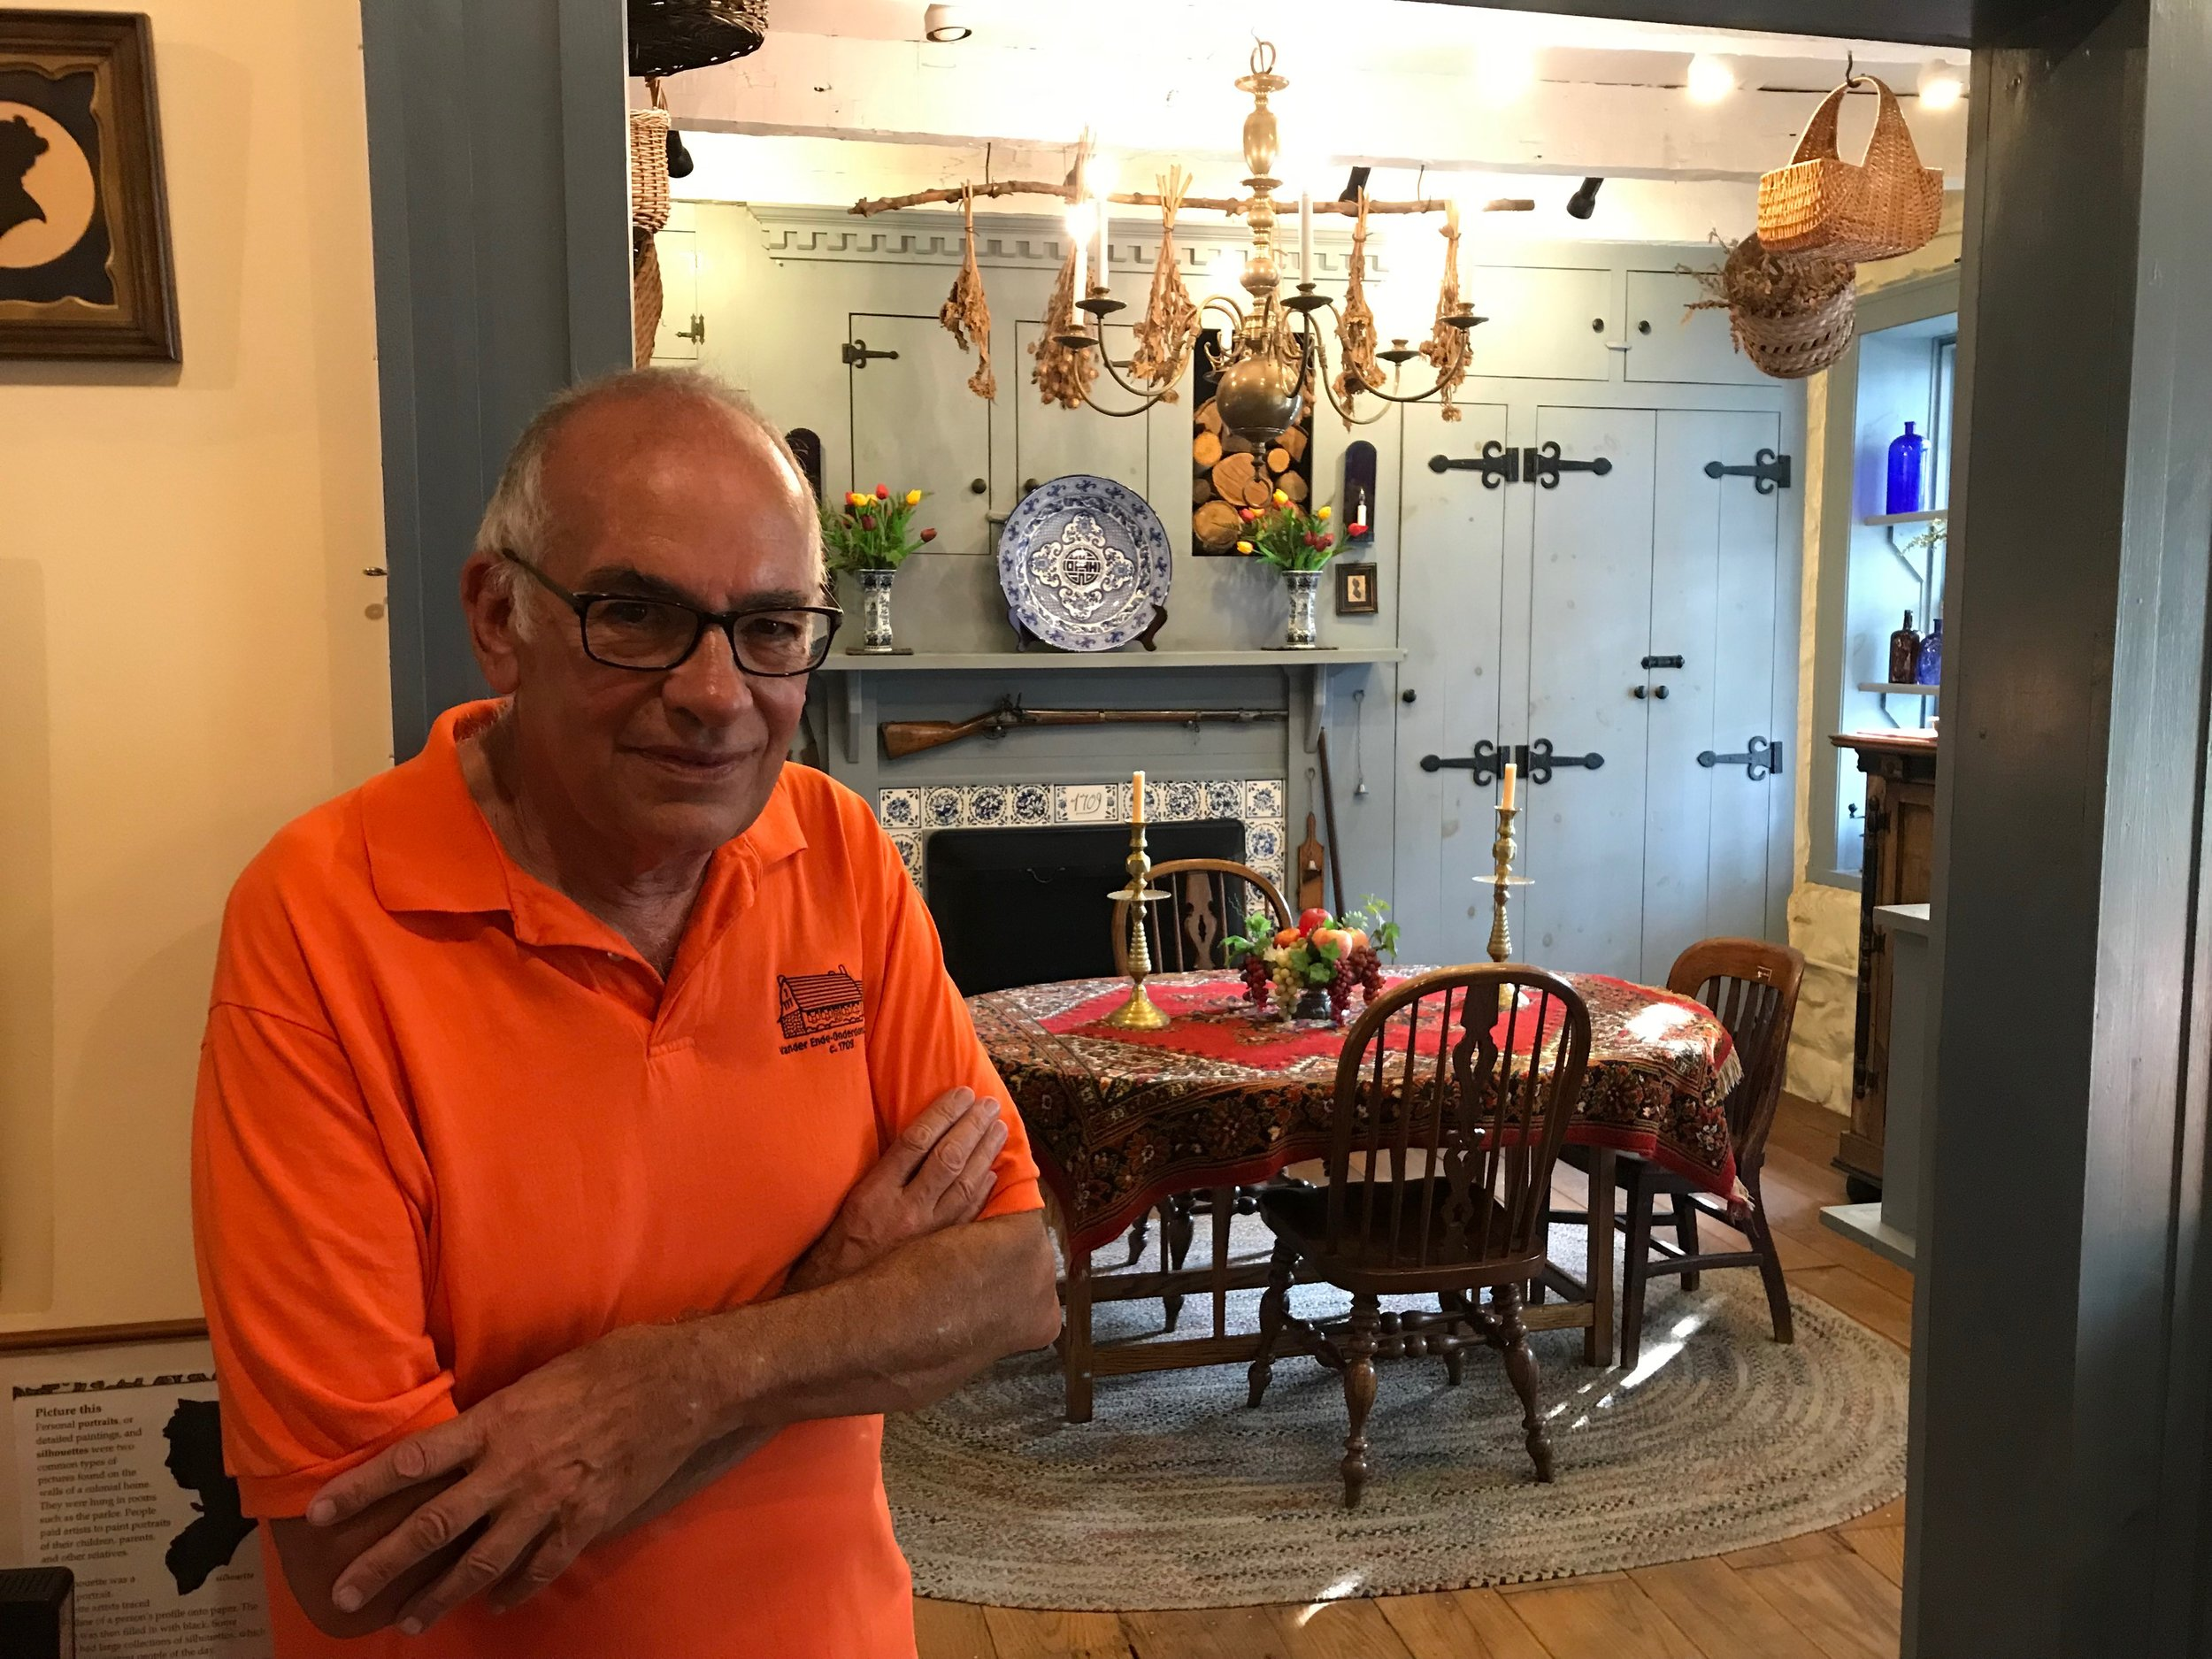 Greater Ridgewood Historical Society President Steve Monte said the Battle of the Boroughs event was the first in annual borough vs. borough series.